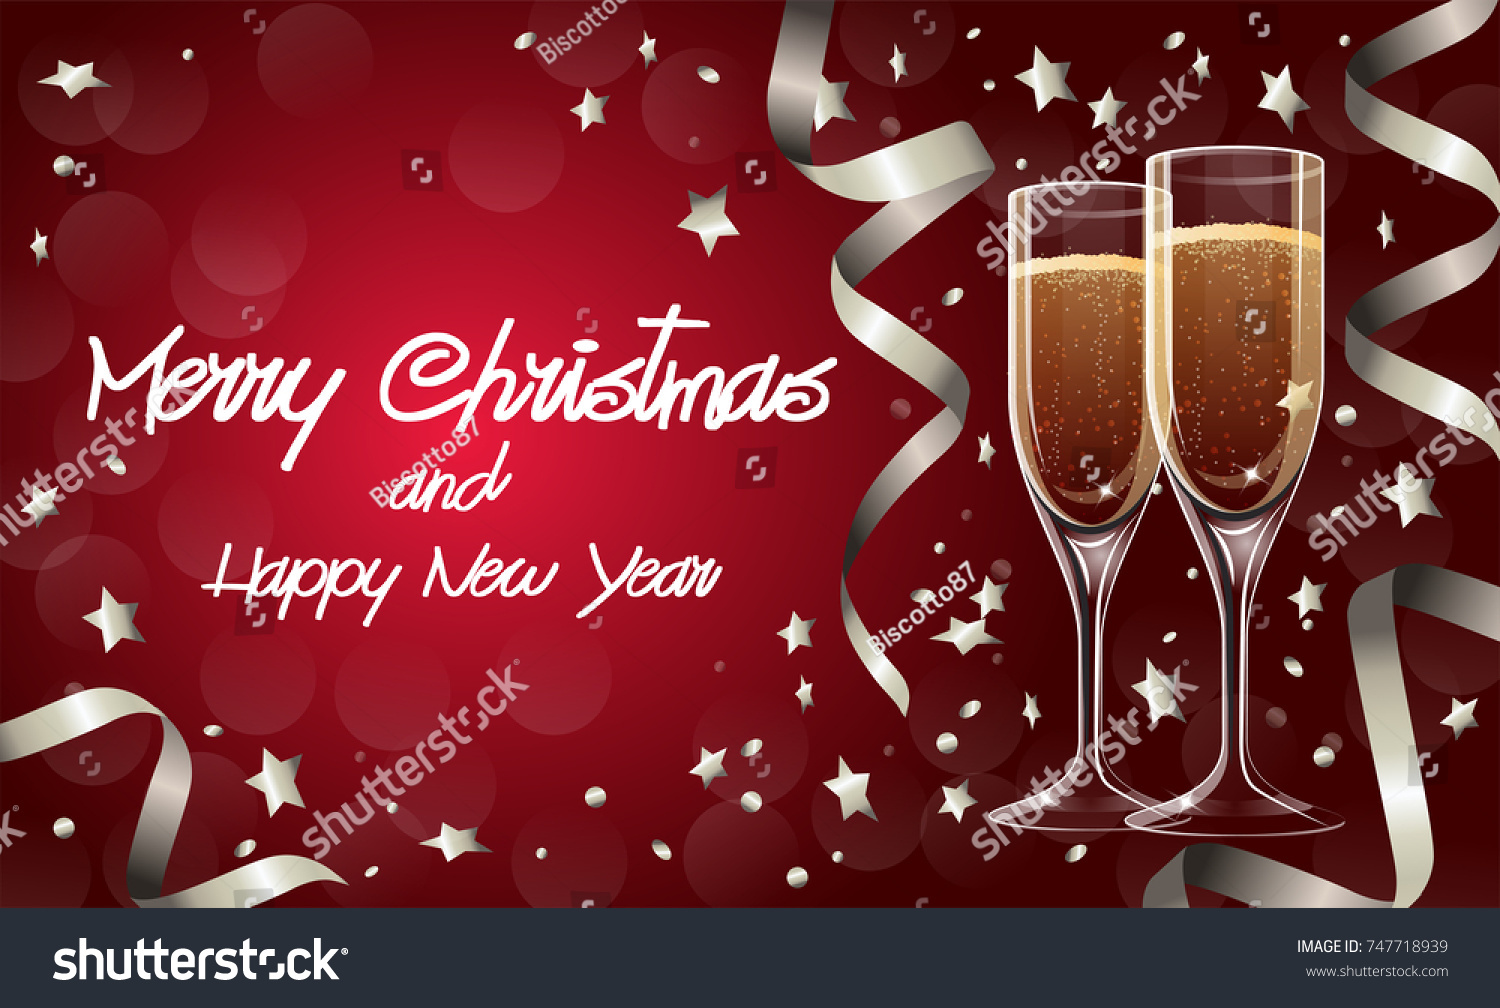 Merry Christmas Happy New Year Greetings Stock Vector 747718939